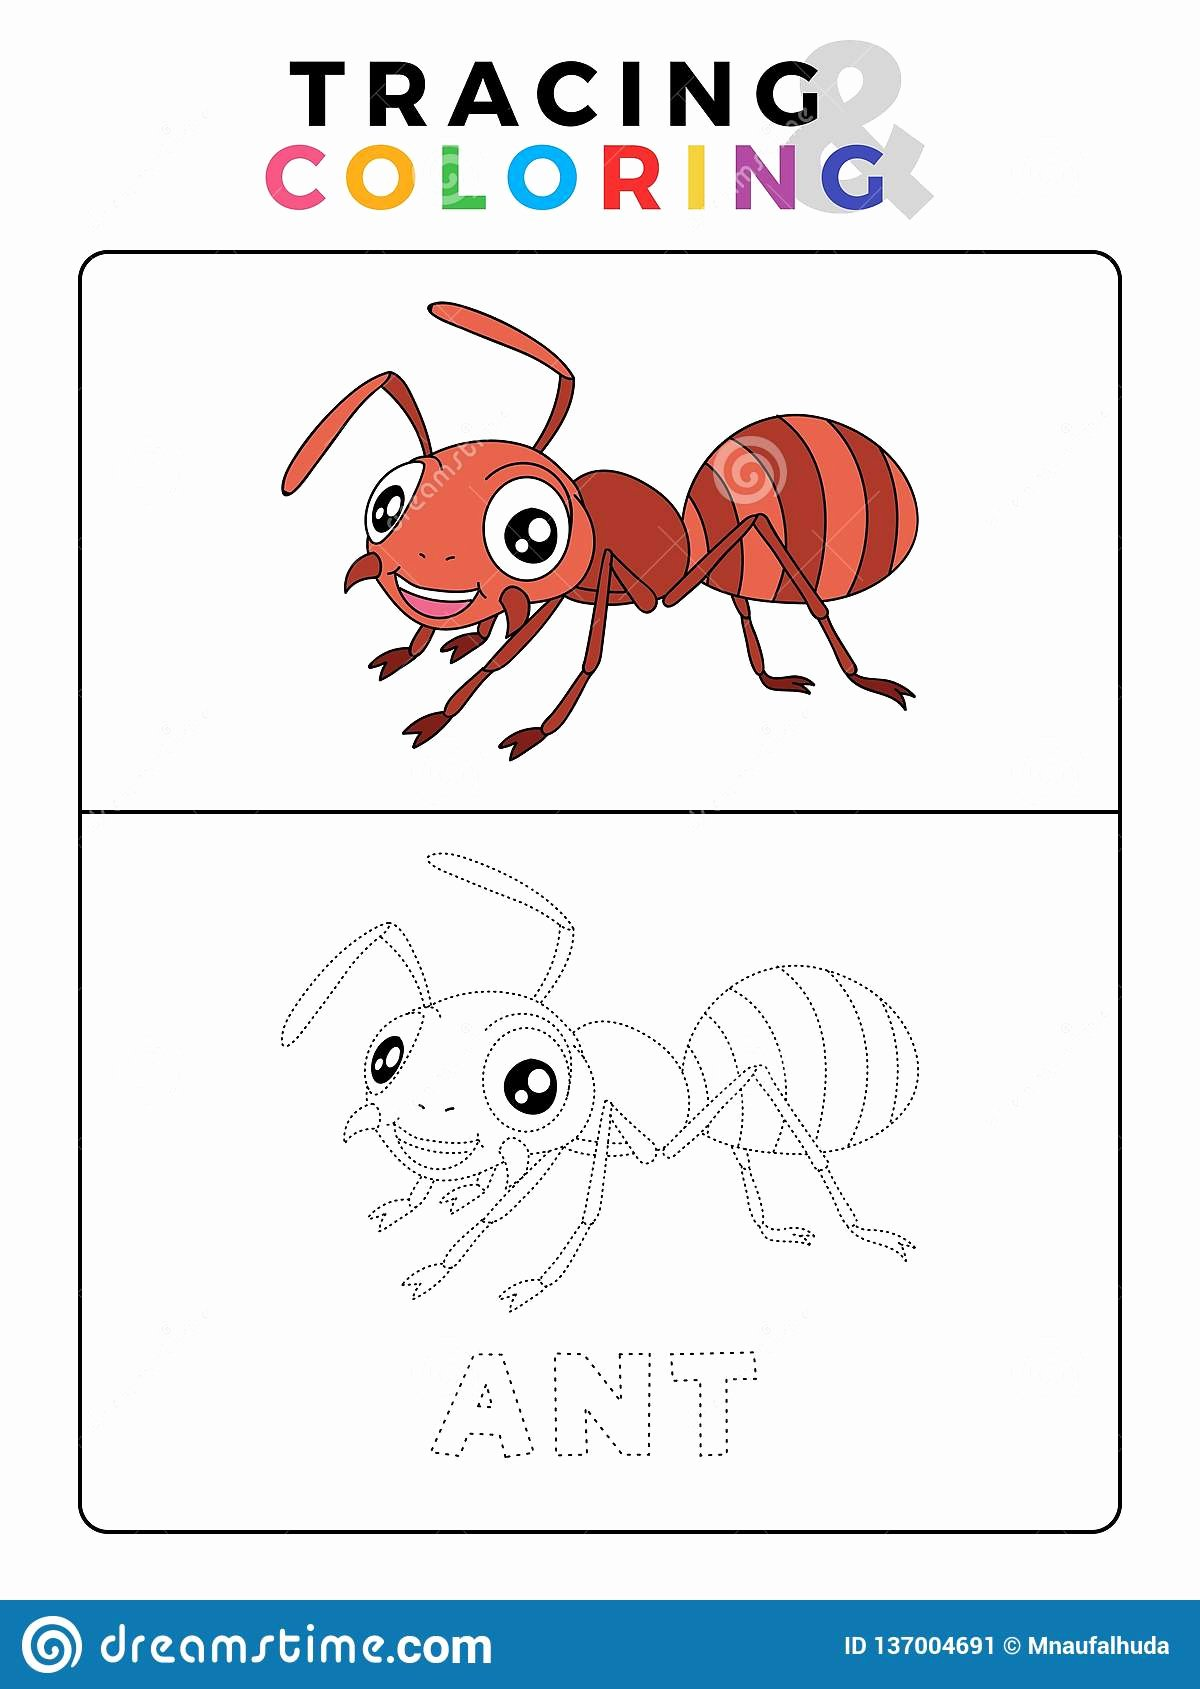 Ant Worksheets for Preschoolers Awesome Funny Ant Insect Animal Tracing and Coloring Book with